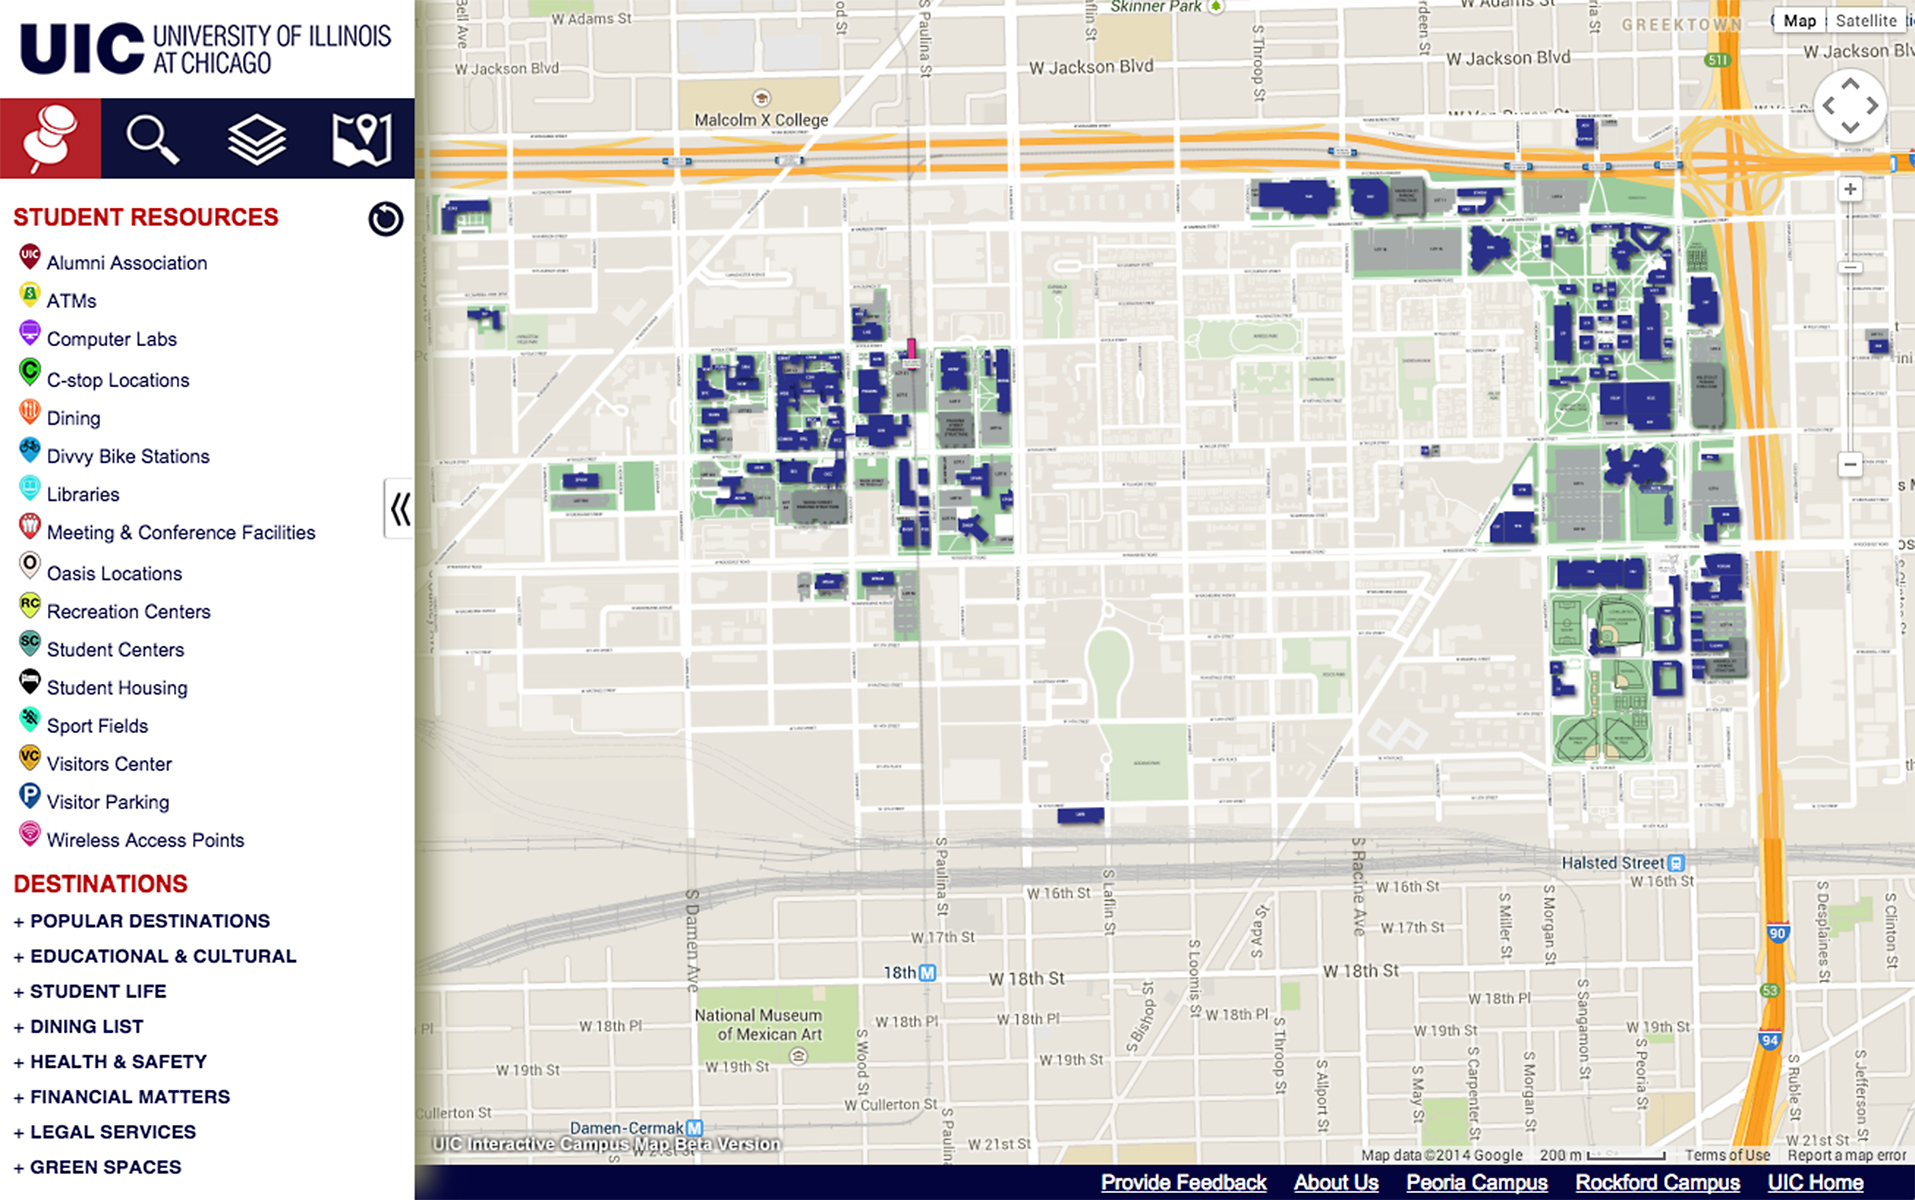 Uic Campus Map Find directions, resources with interactive campus map   UIC Today Uic Campus Map